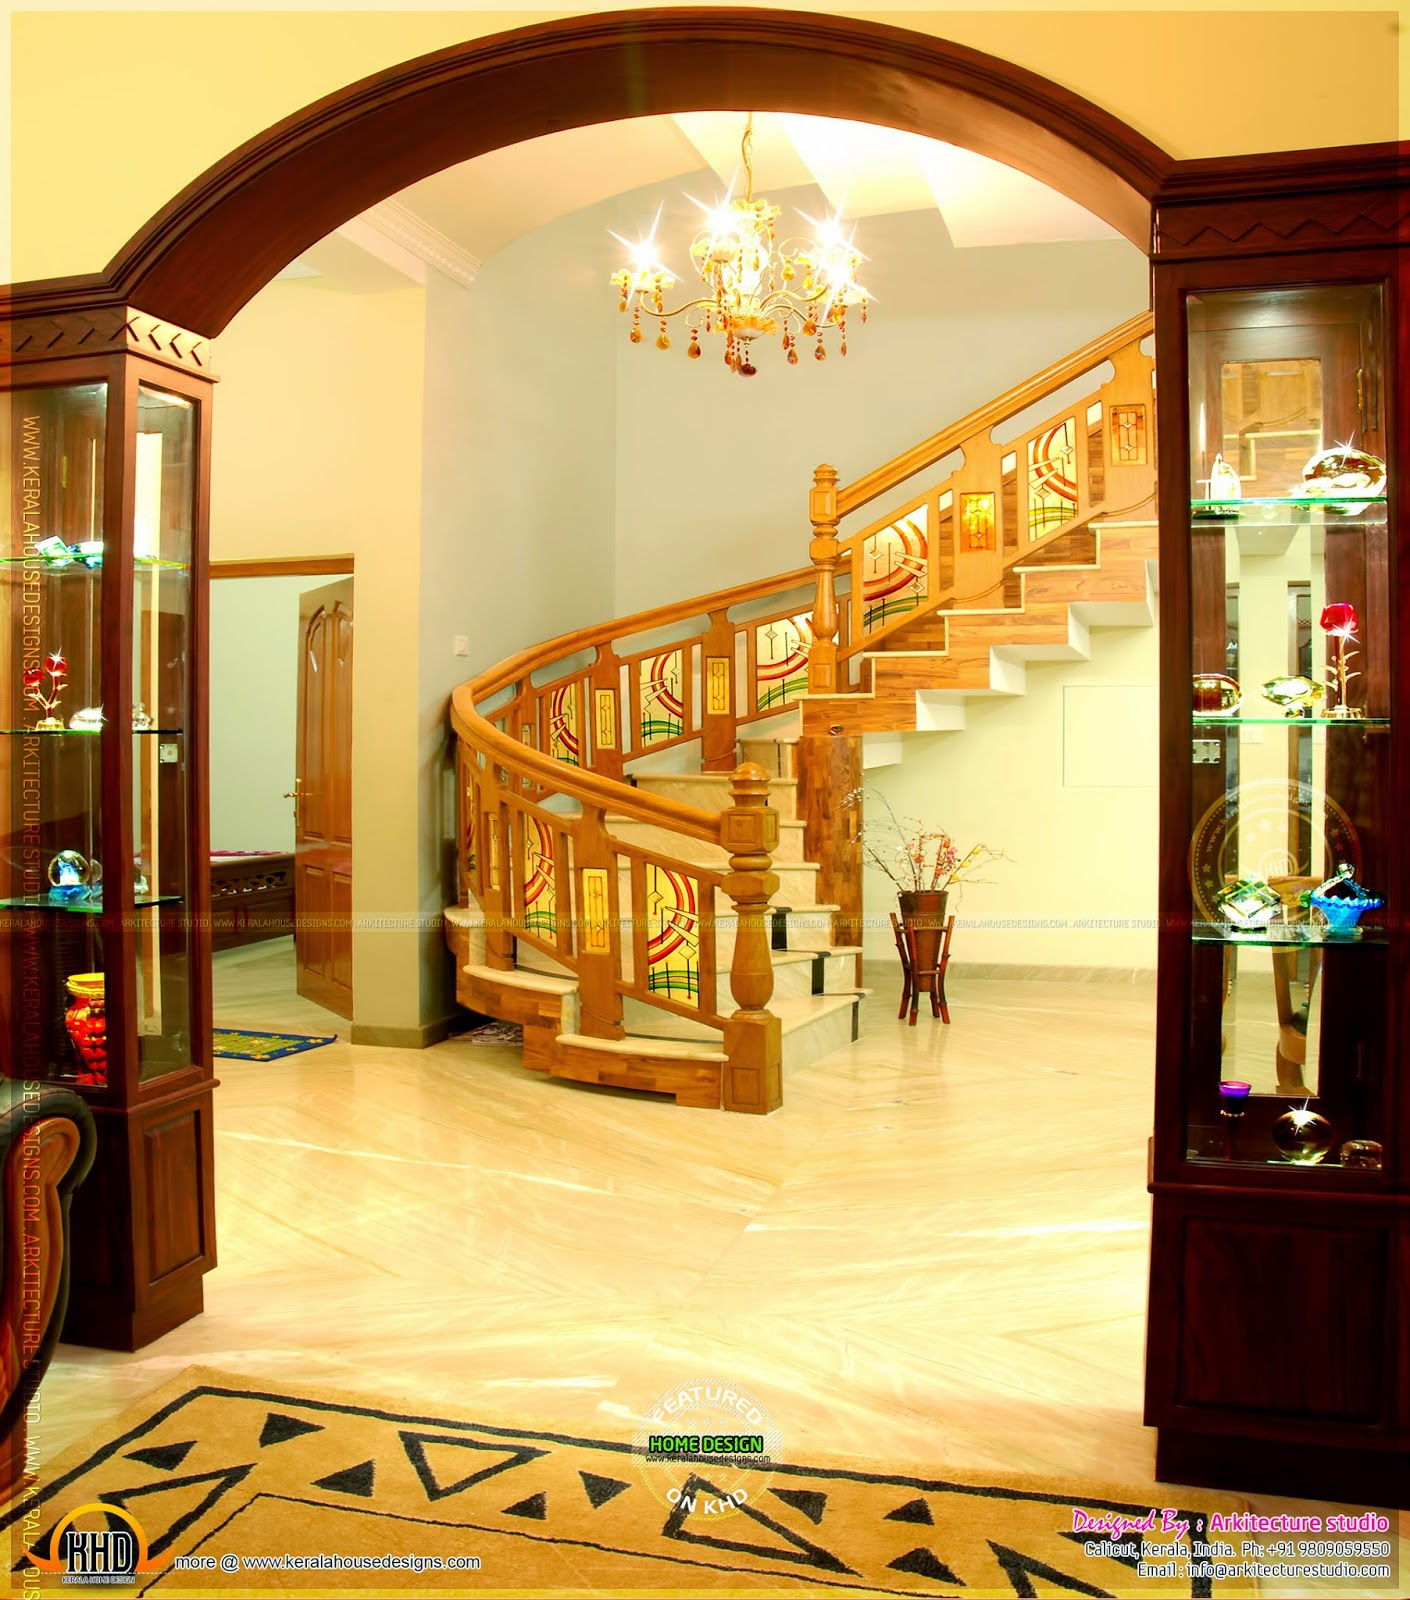 Home Interior Design: Real House In Kerala With Interior Photos